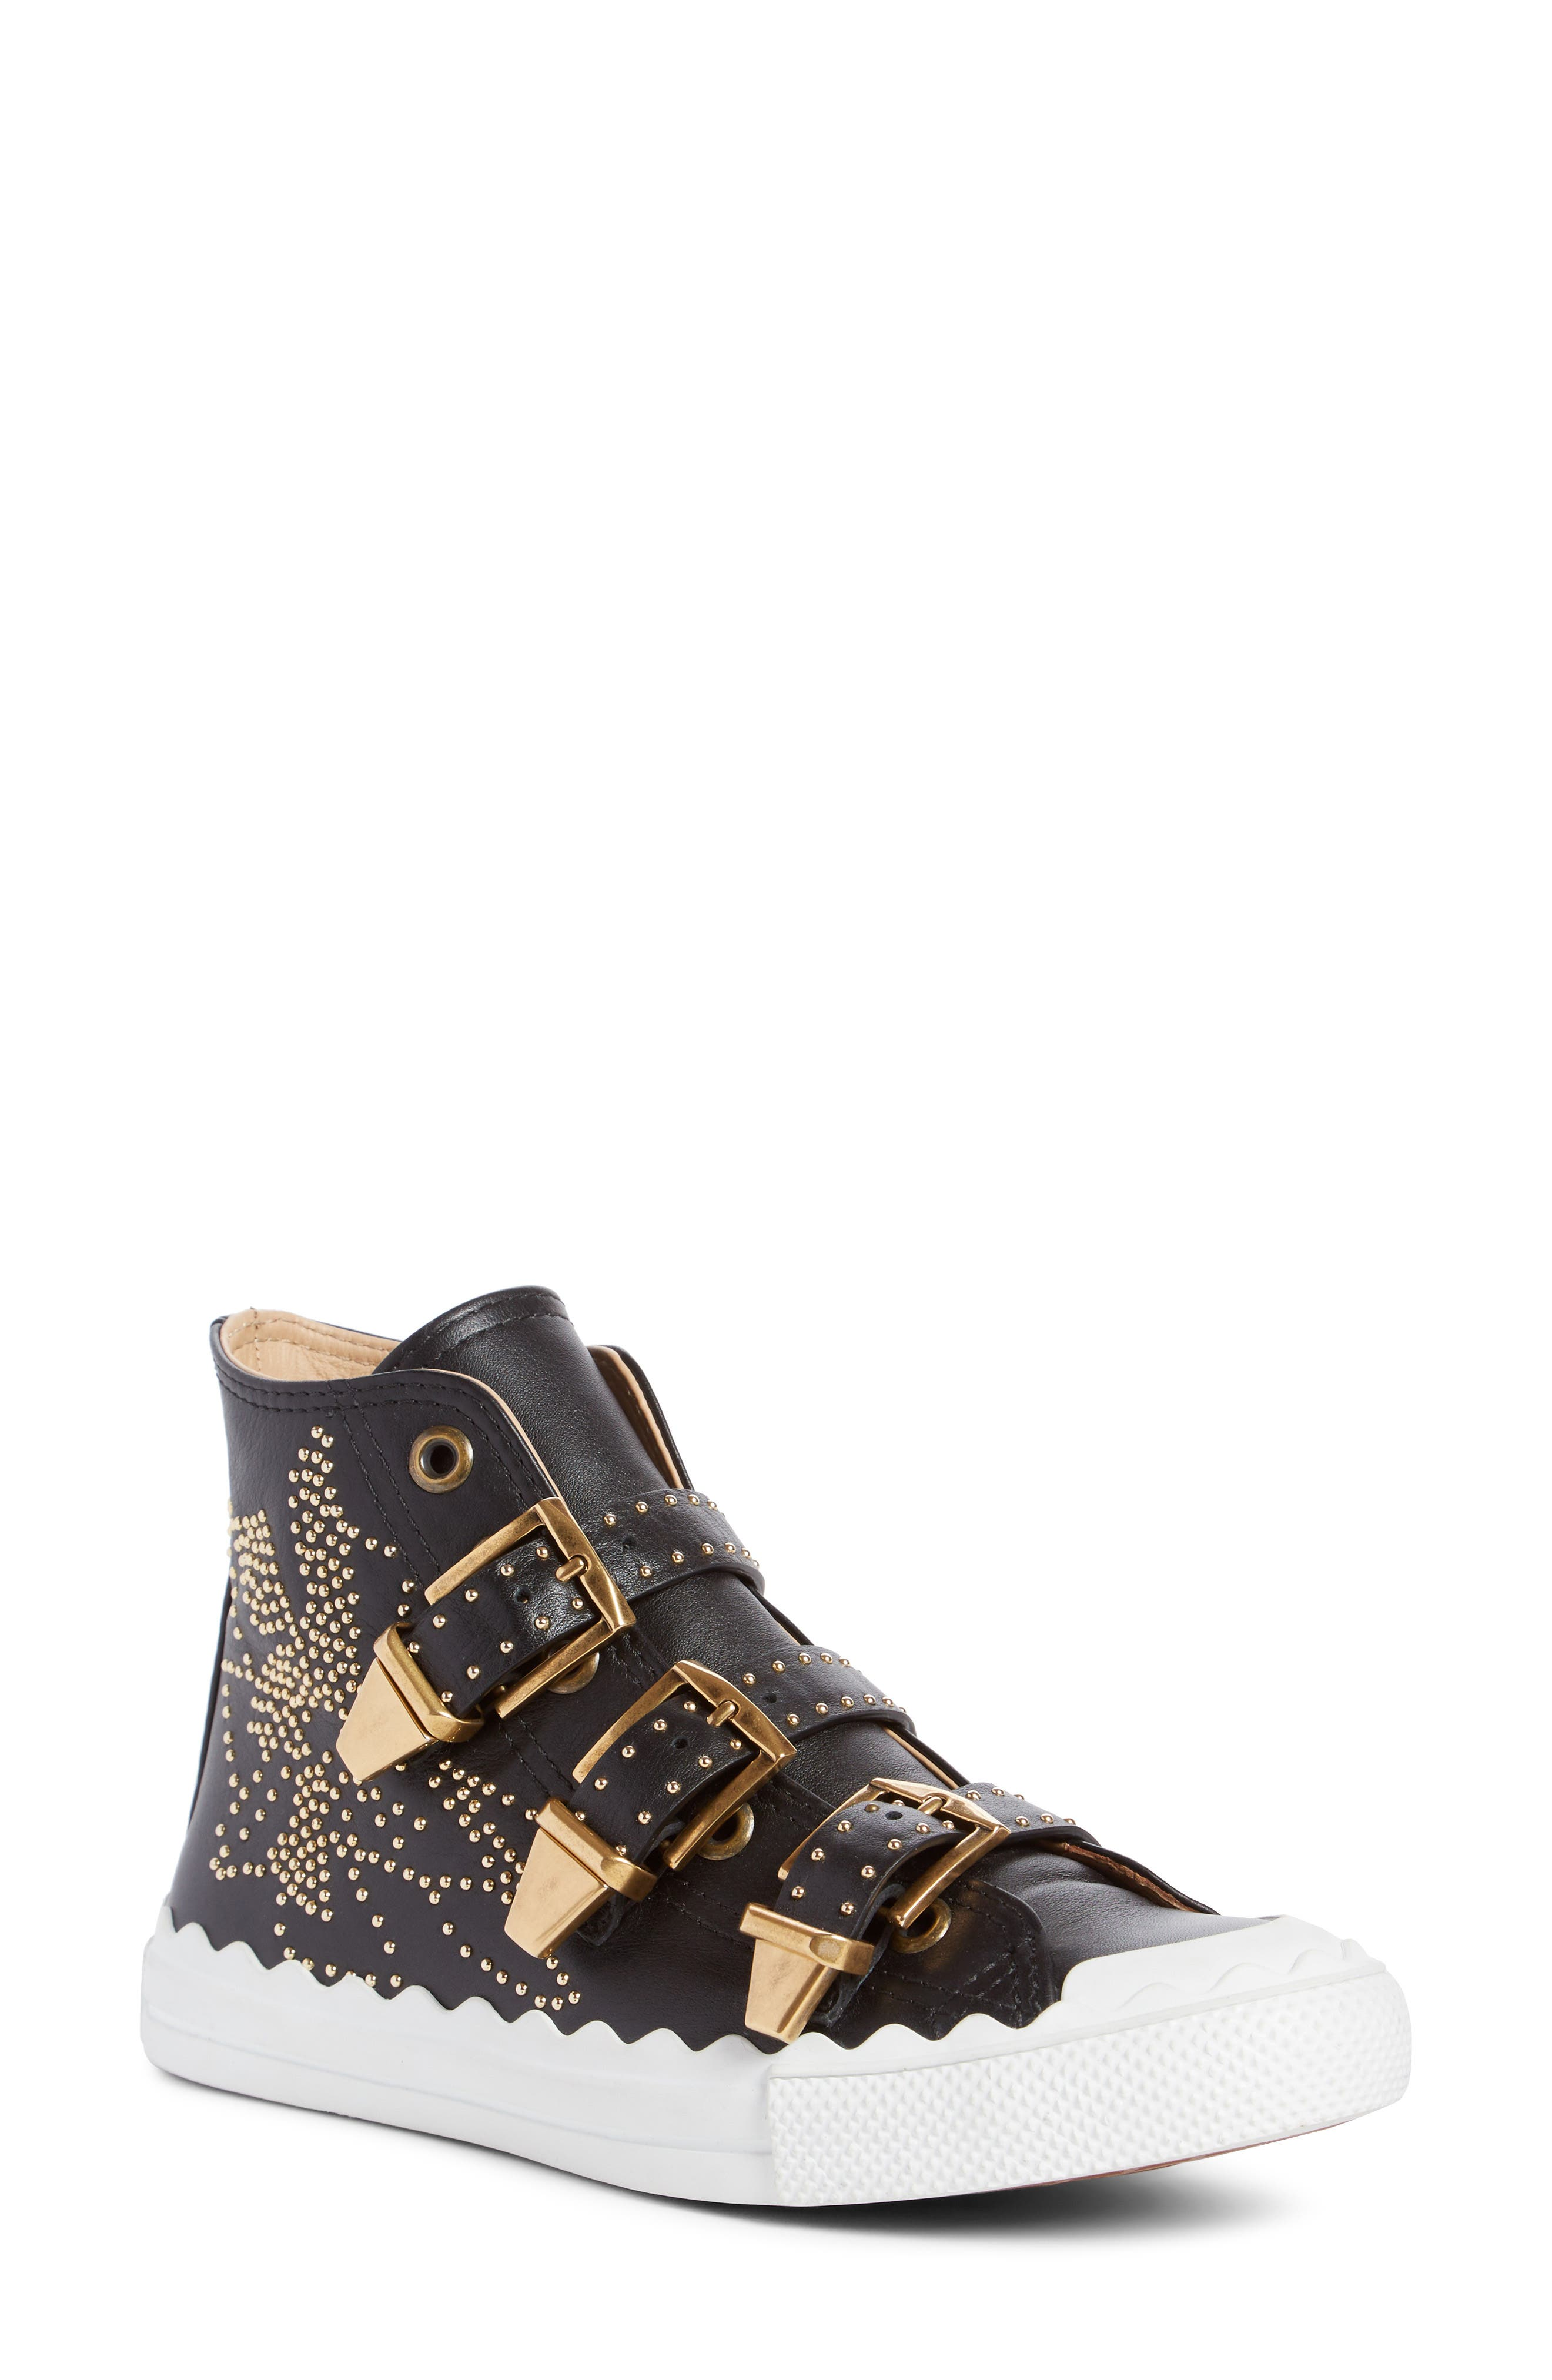 Kyle Stud Buckle High Top Sneaker,                         Main,                         color, Black/ Gold